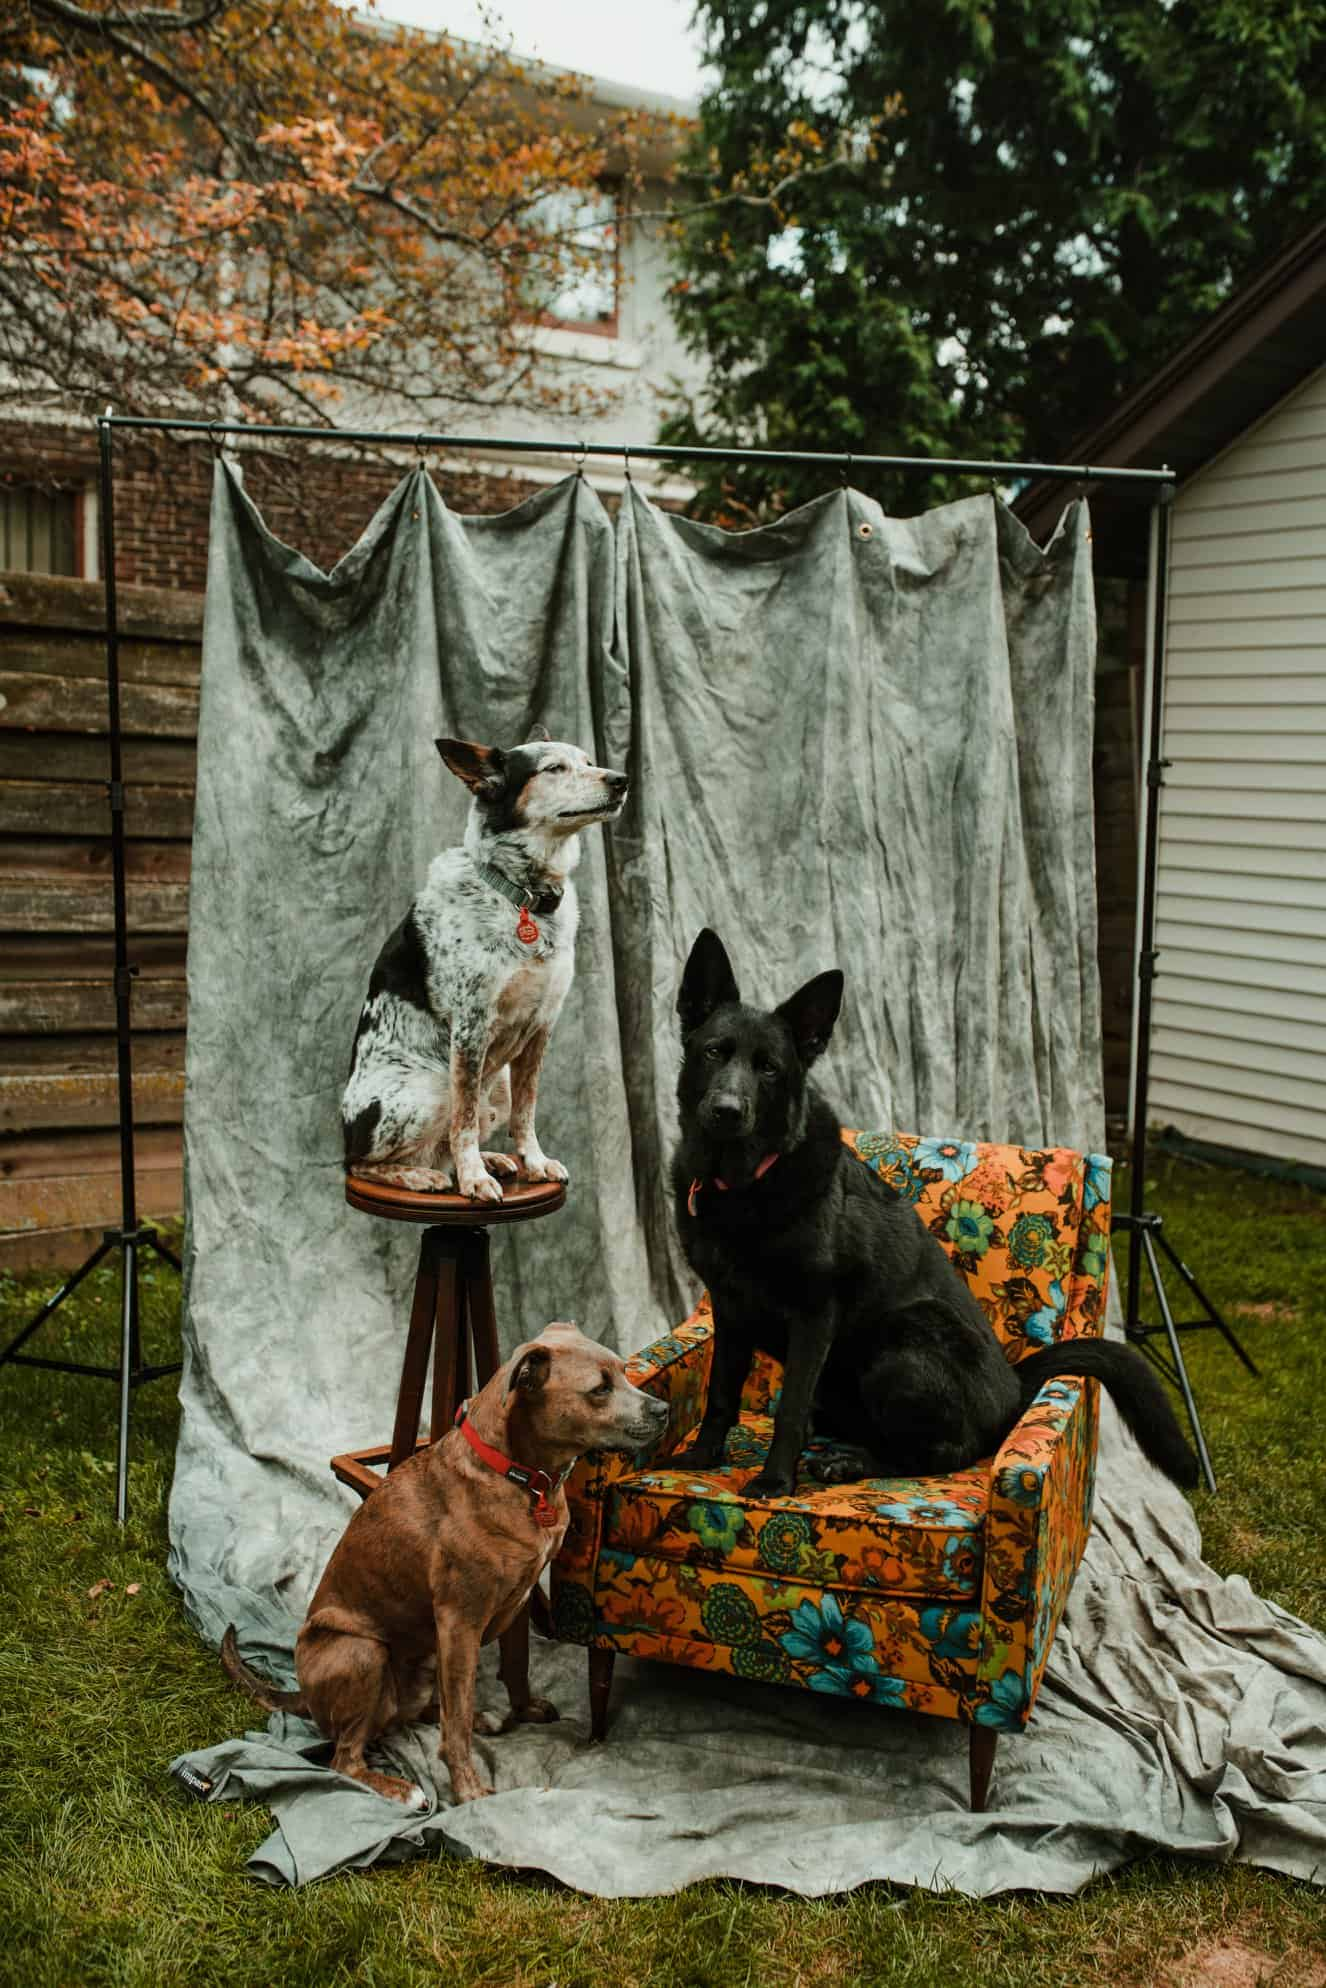 dogs are beautiful animals, these ones are posing in the backyard garden